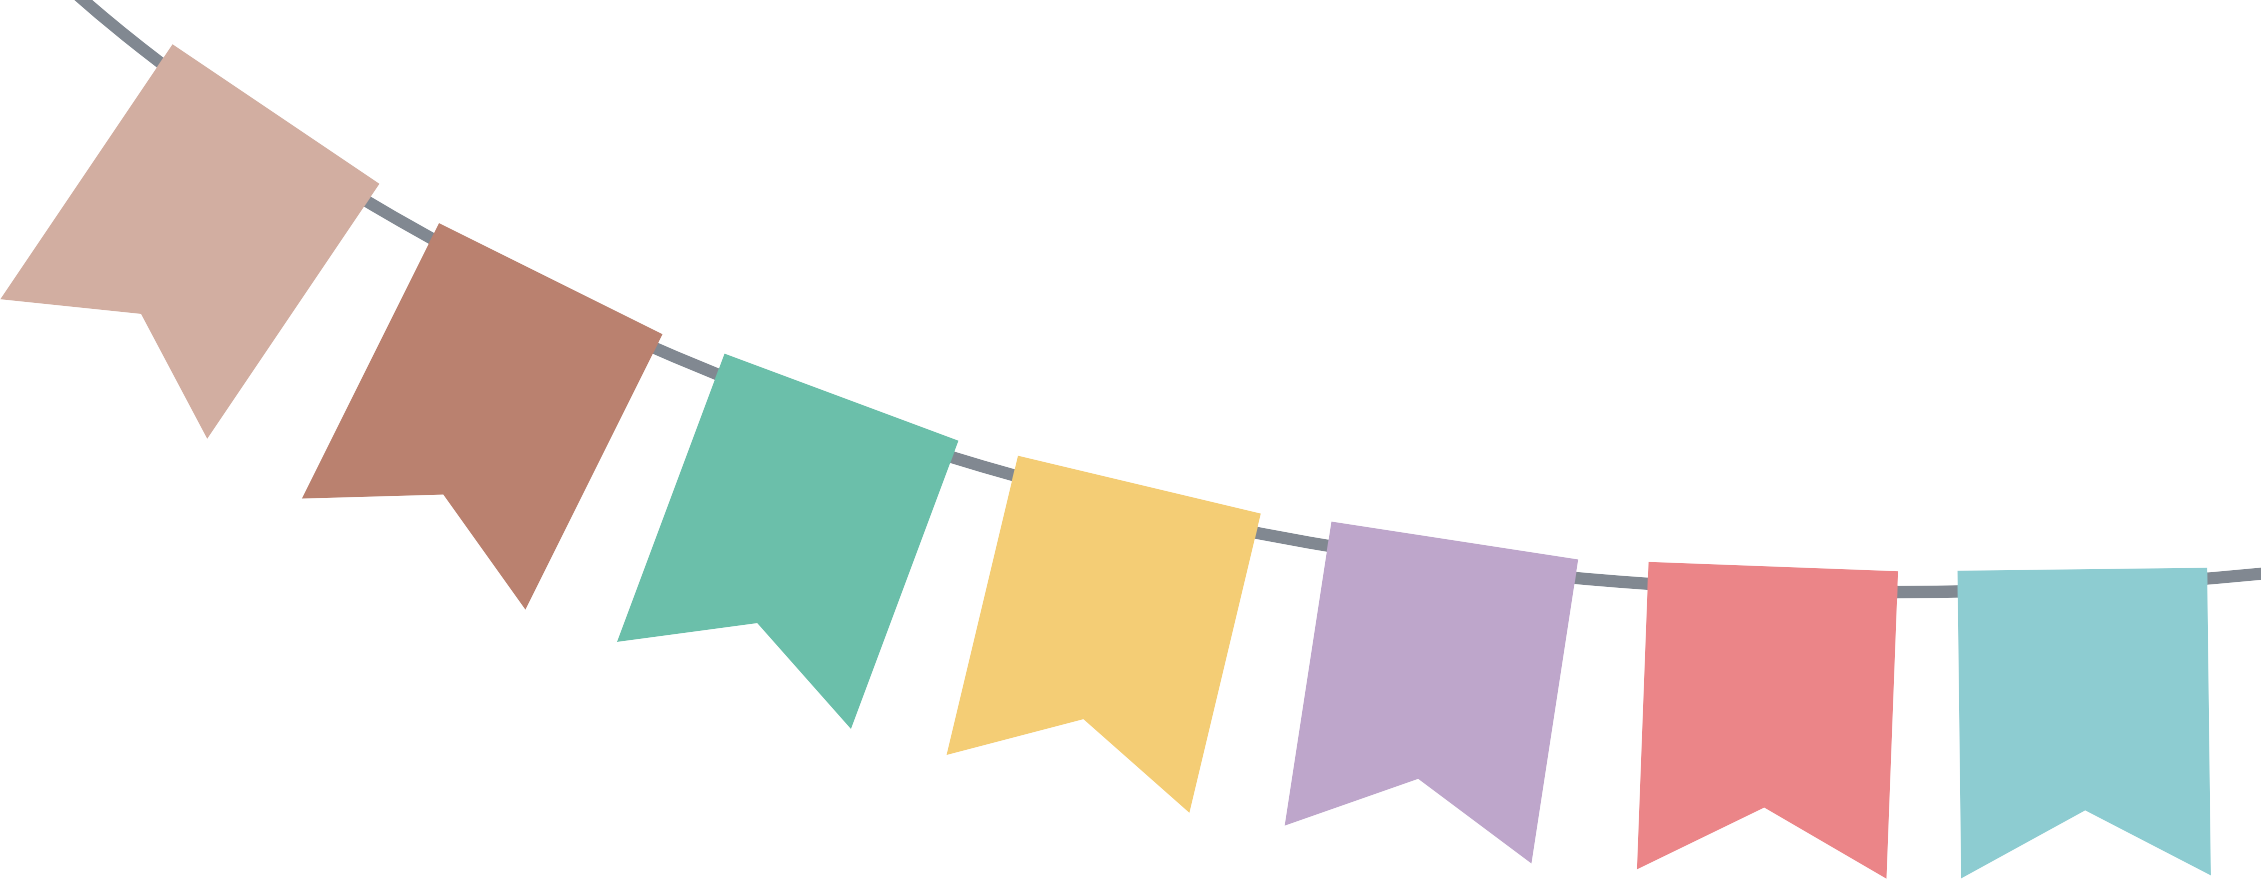 Party banner png. Halloween web bunting birthday